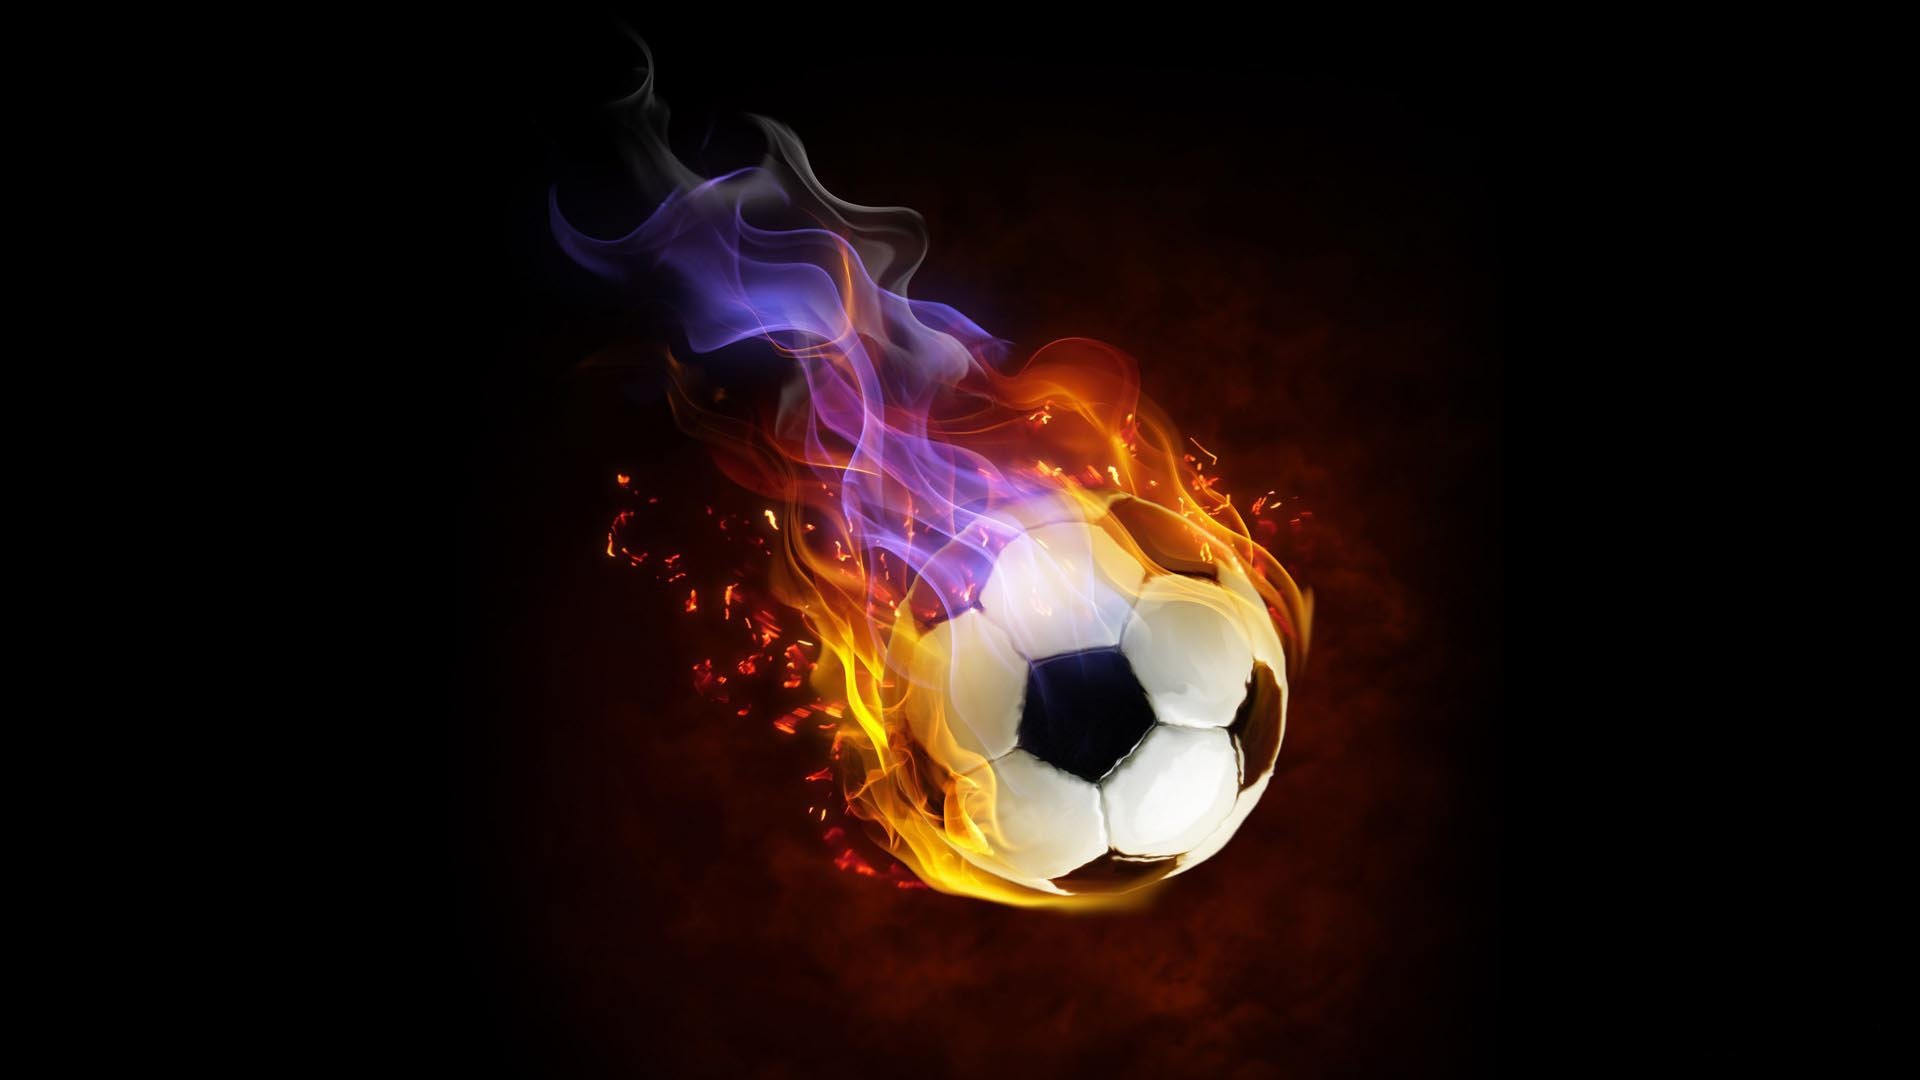 download HD Cool Soccer Wallpapers [1920x1080] for your 1920x1080